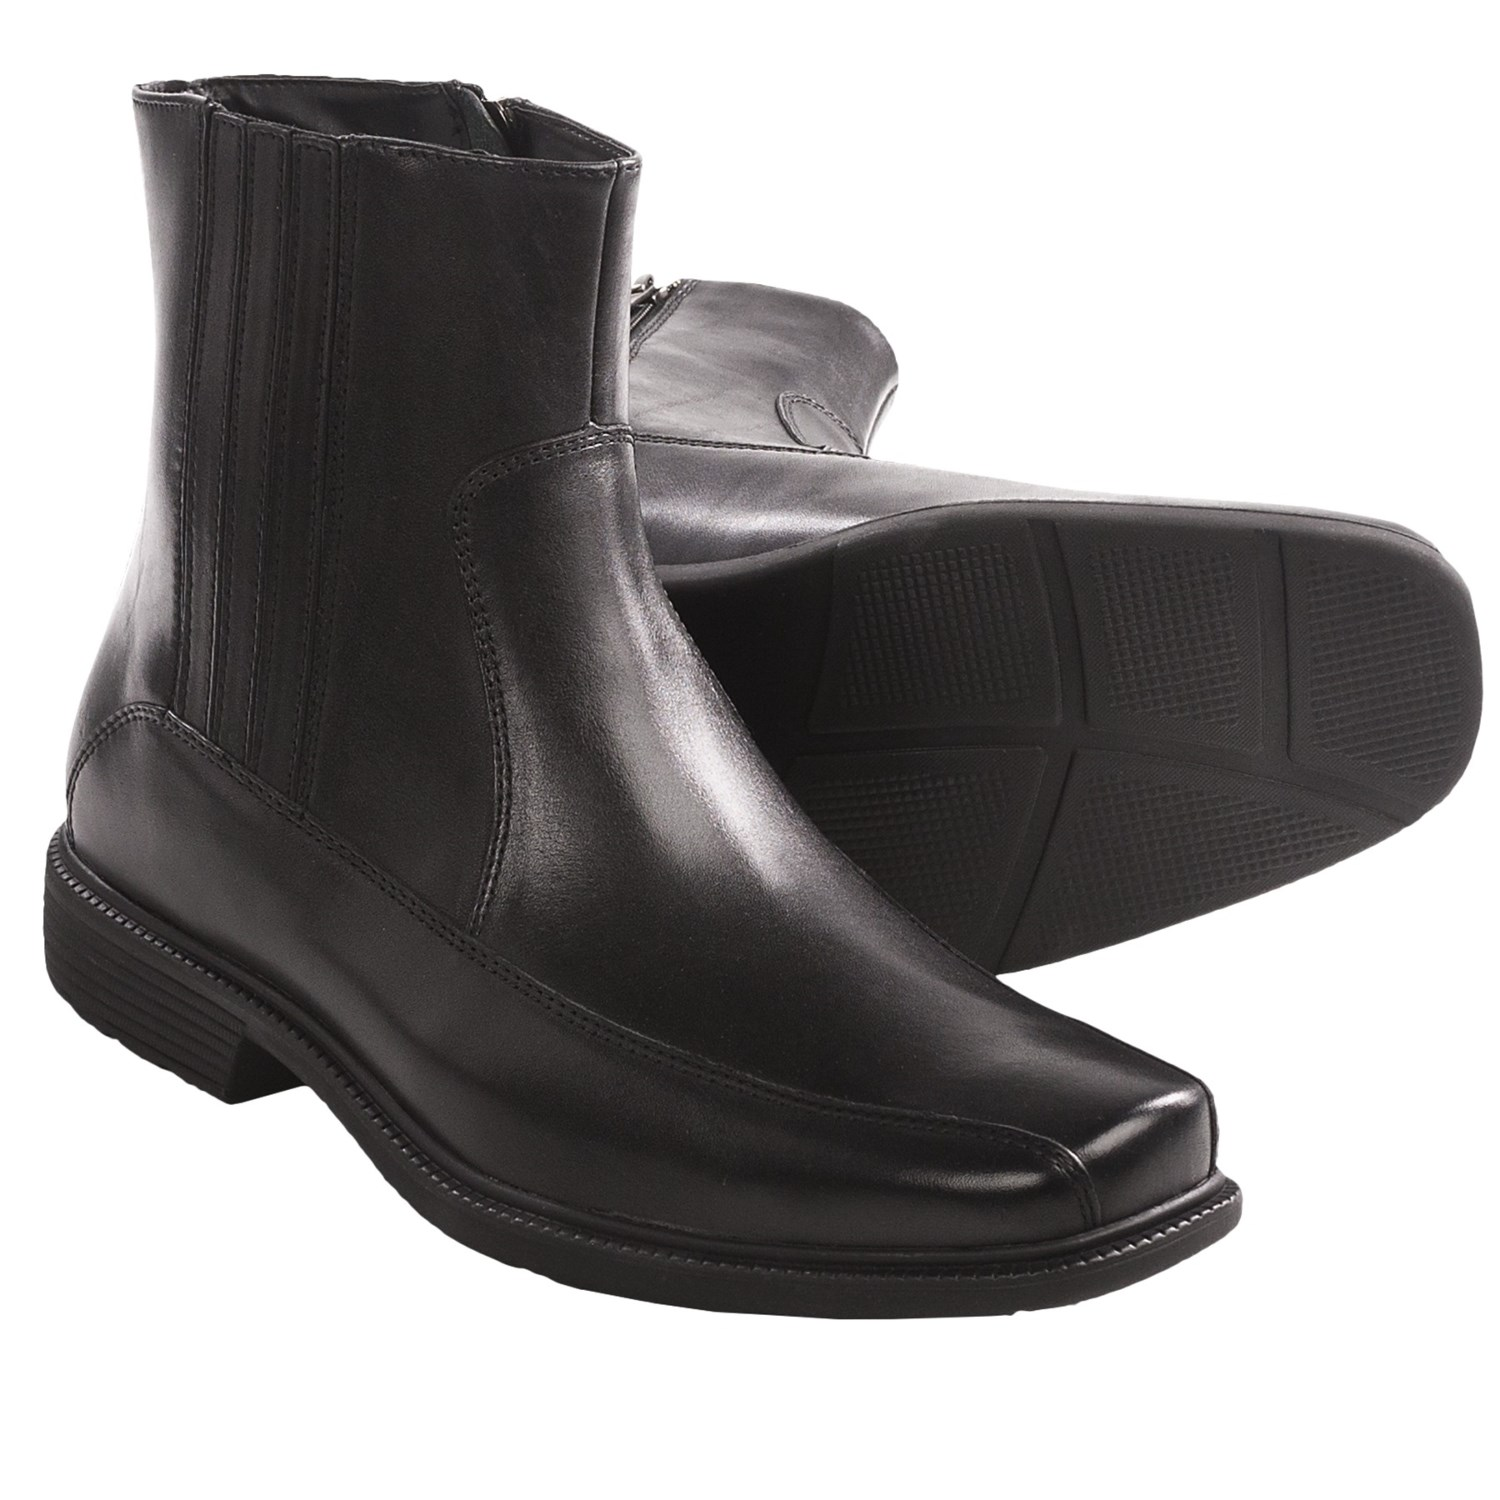 Mens Casual Dress Boots - Viewing Gallery